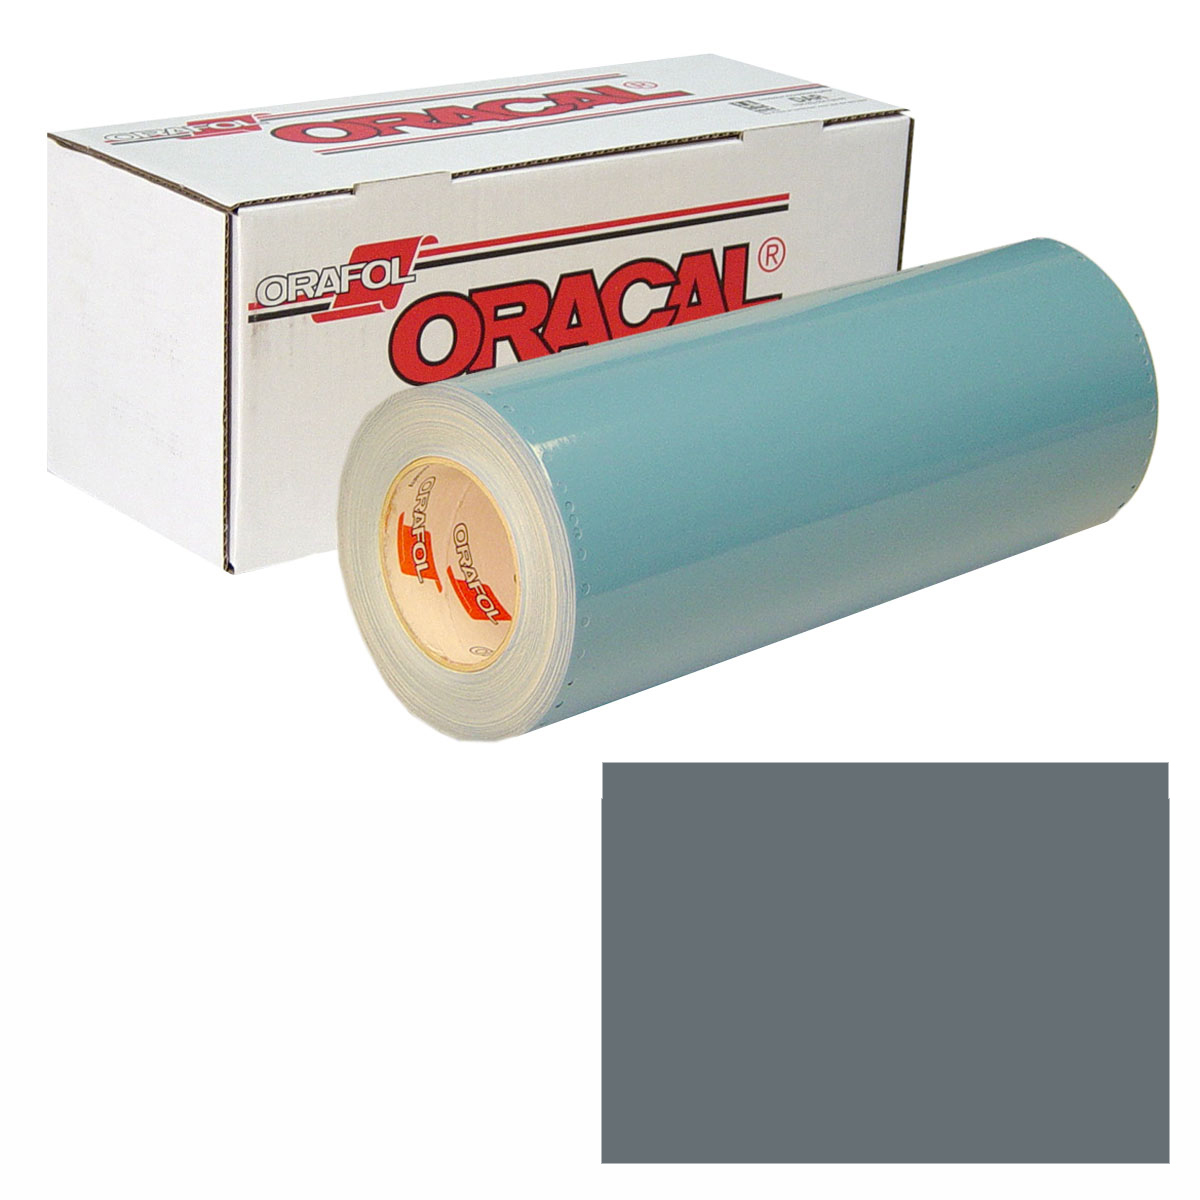 ORACAL 751 Unp 24in X 50yd 713 Iron Grey